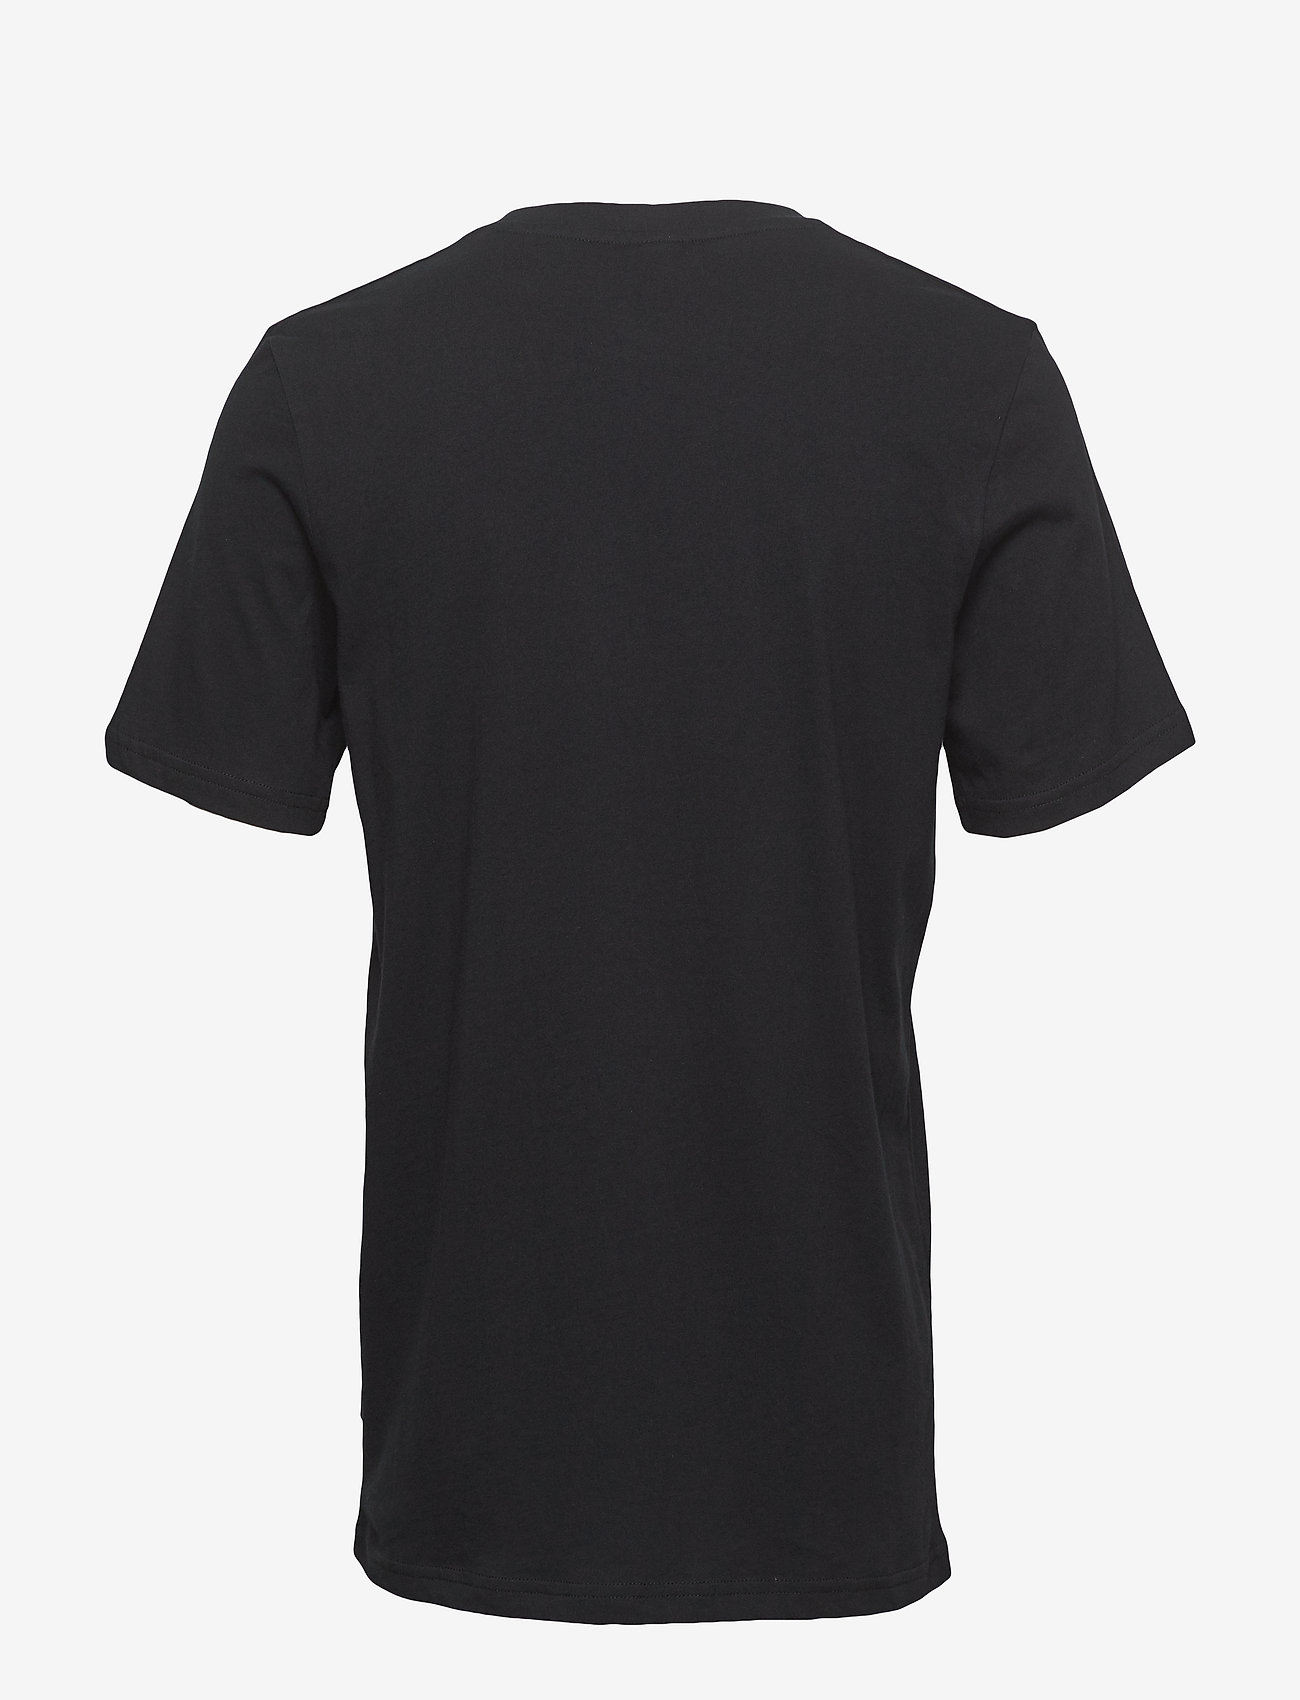 Scotch & Soda - Cotton tee with wider neck rib - basic t-shirts - black - 1